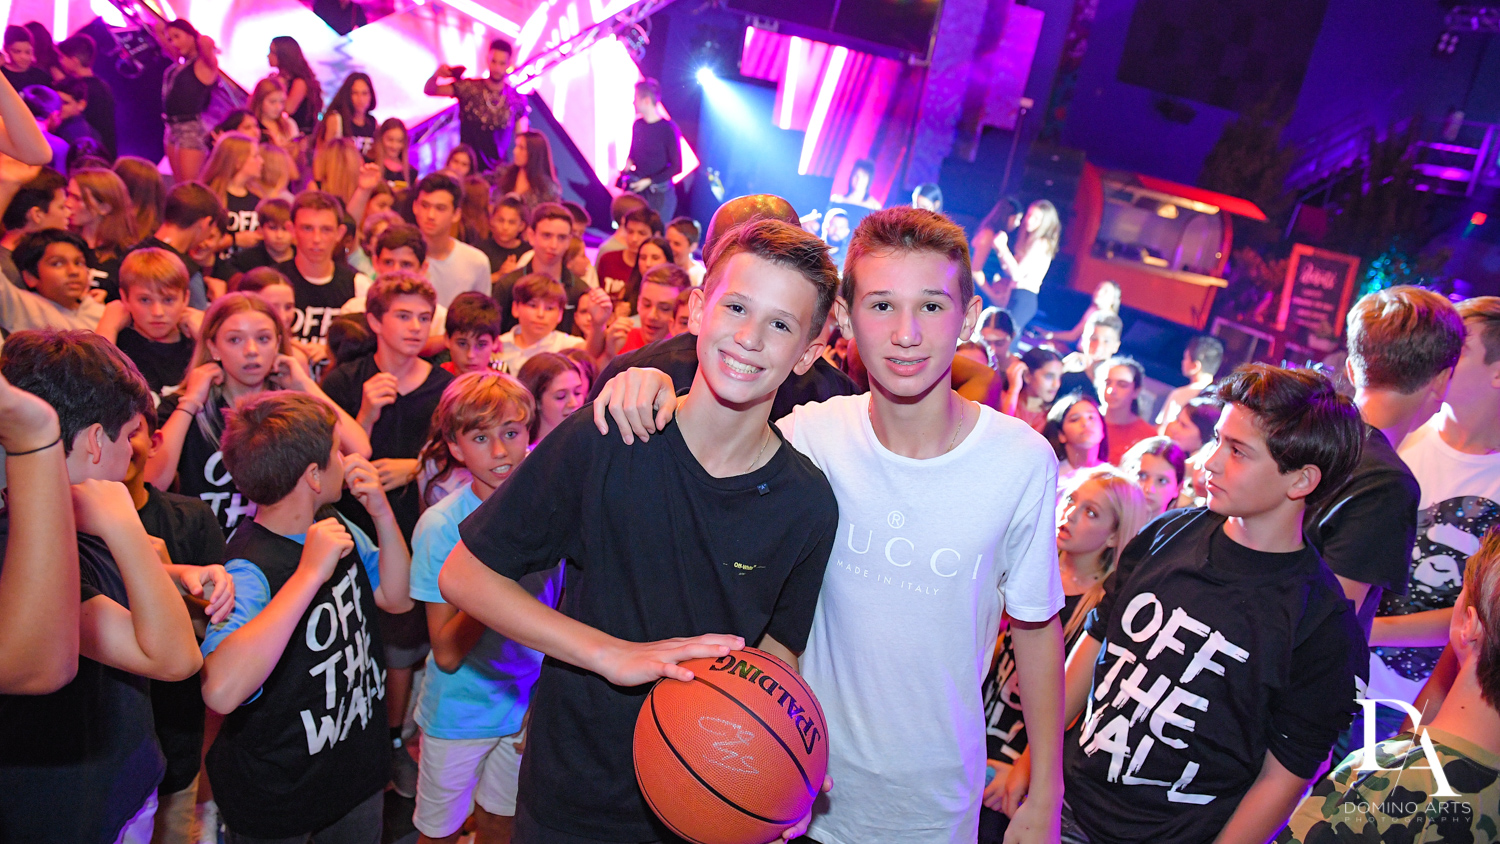 basketball theme at Urban Graffiti BNai Mitzvah with celebrity Shaq at Xtreme Action Park by Domino Arts Photography